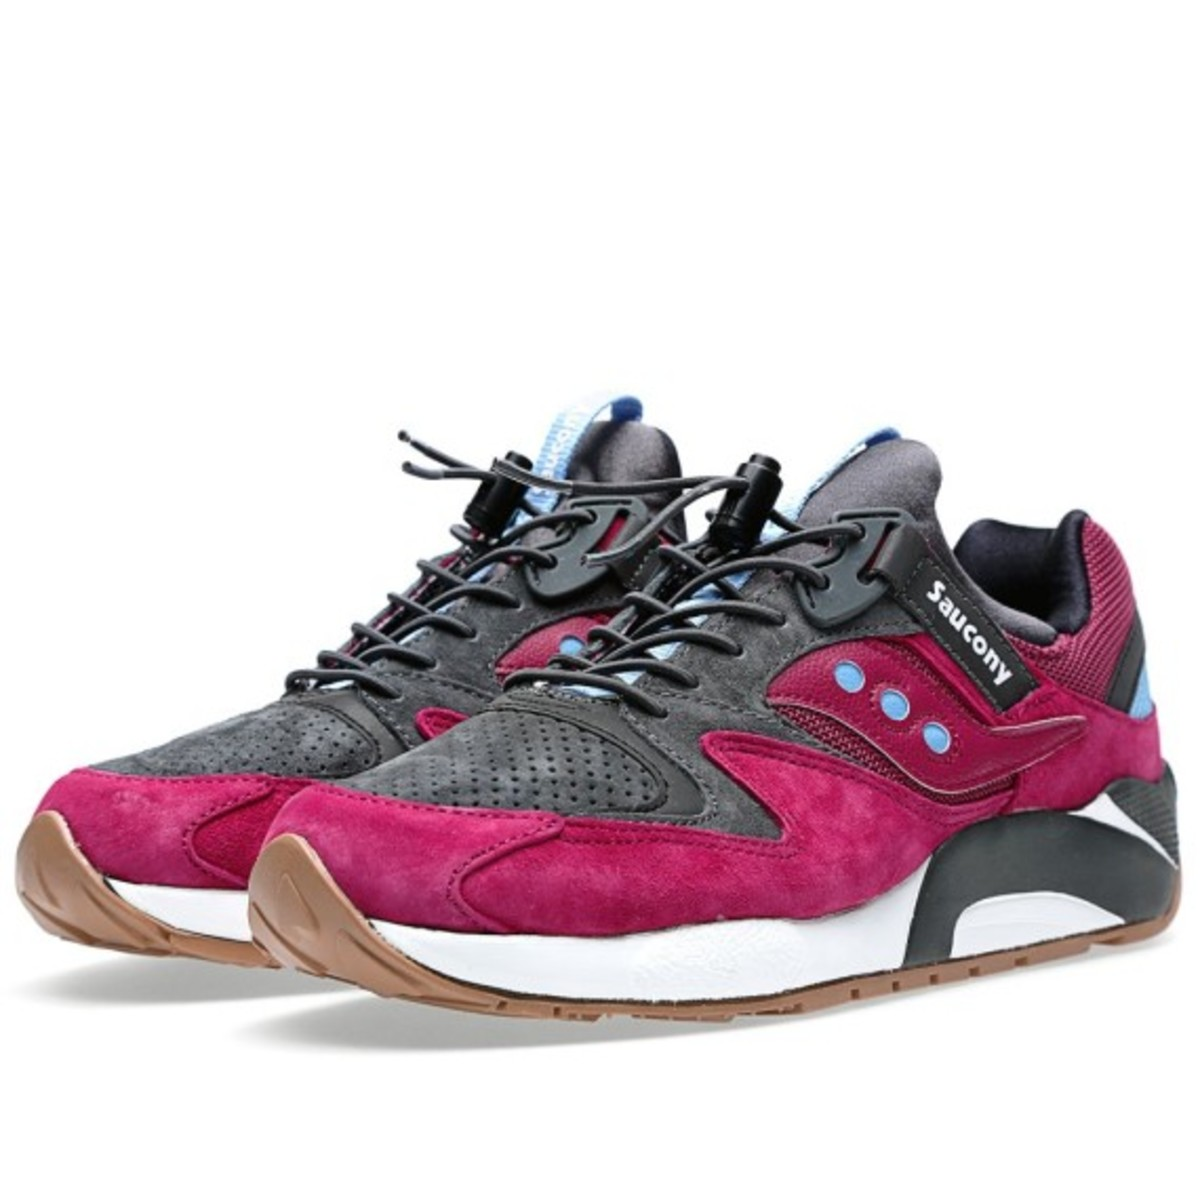 new arrival 07b72 c4459 Saucony Grid 9000 Premium - 3 Dots Pack - Freshness Mag